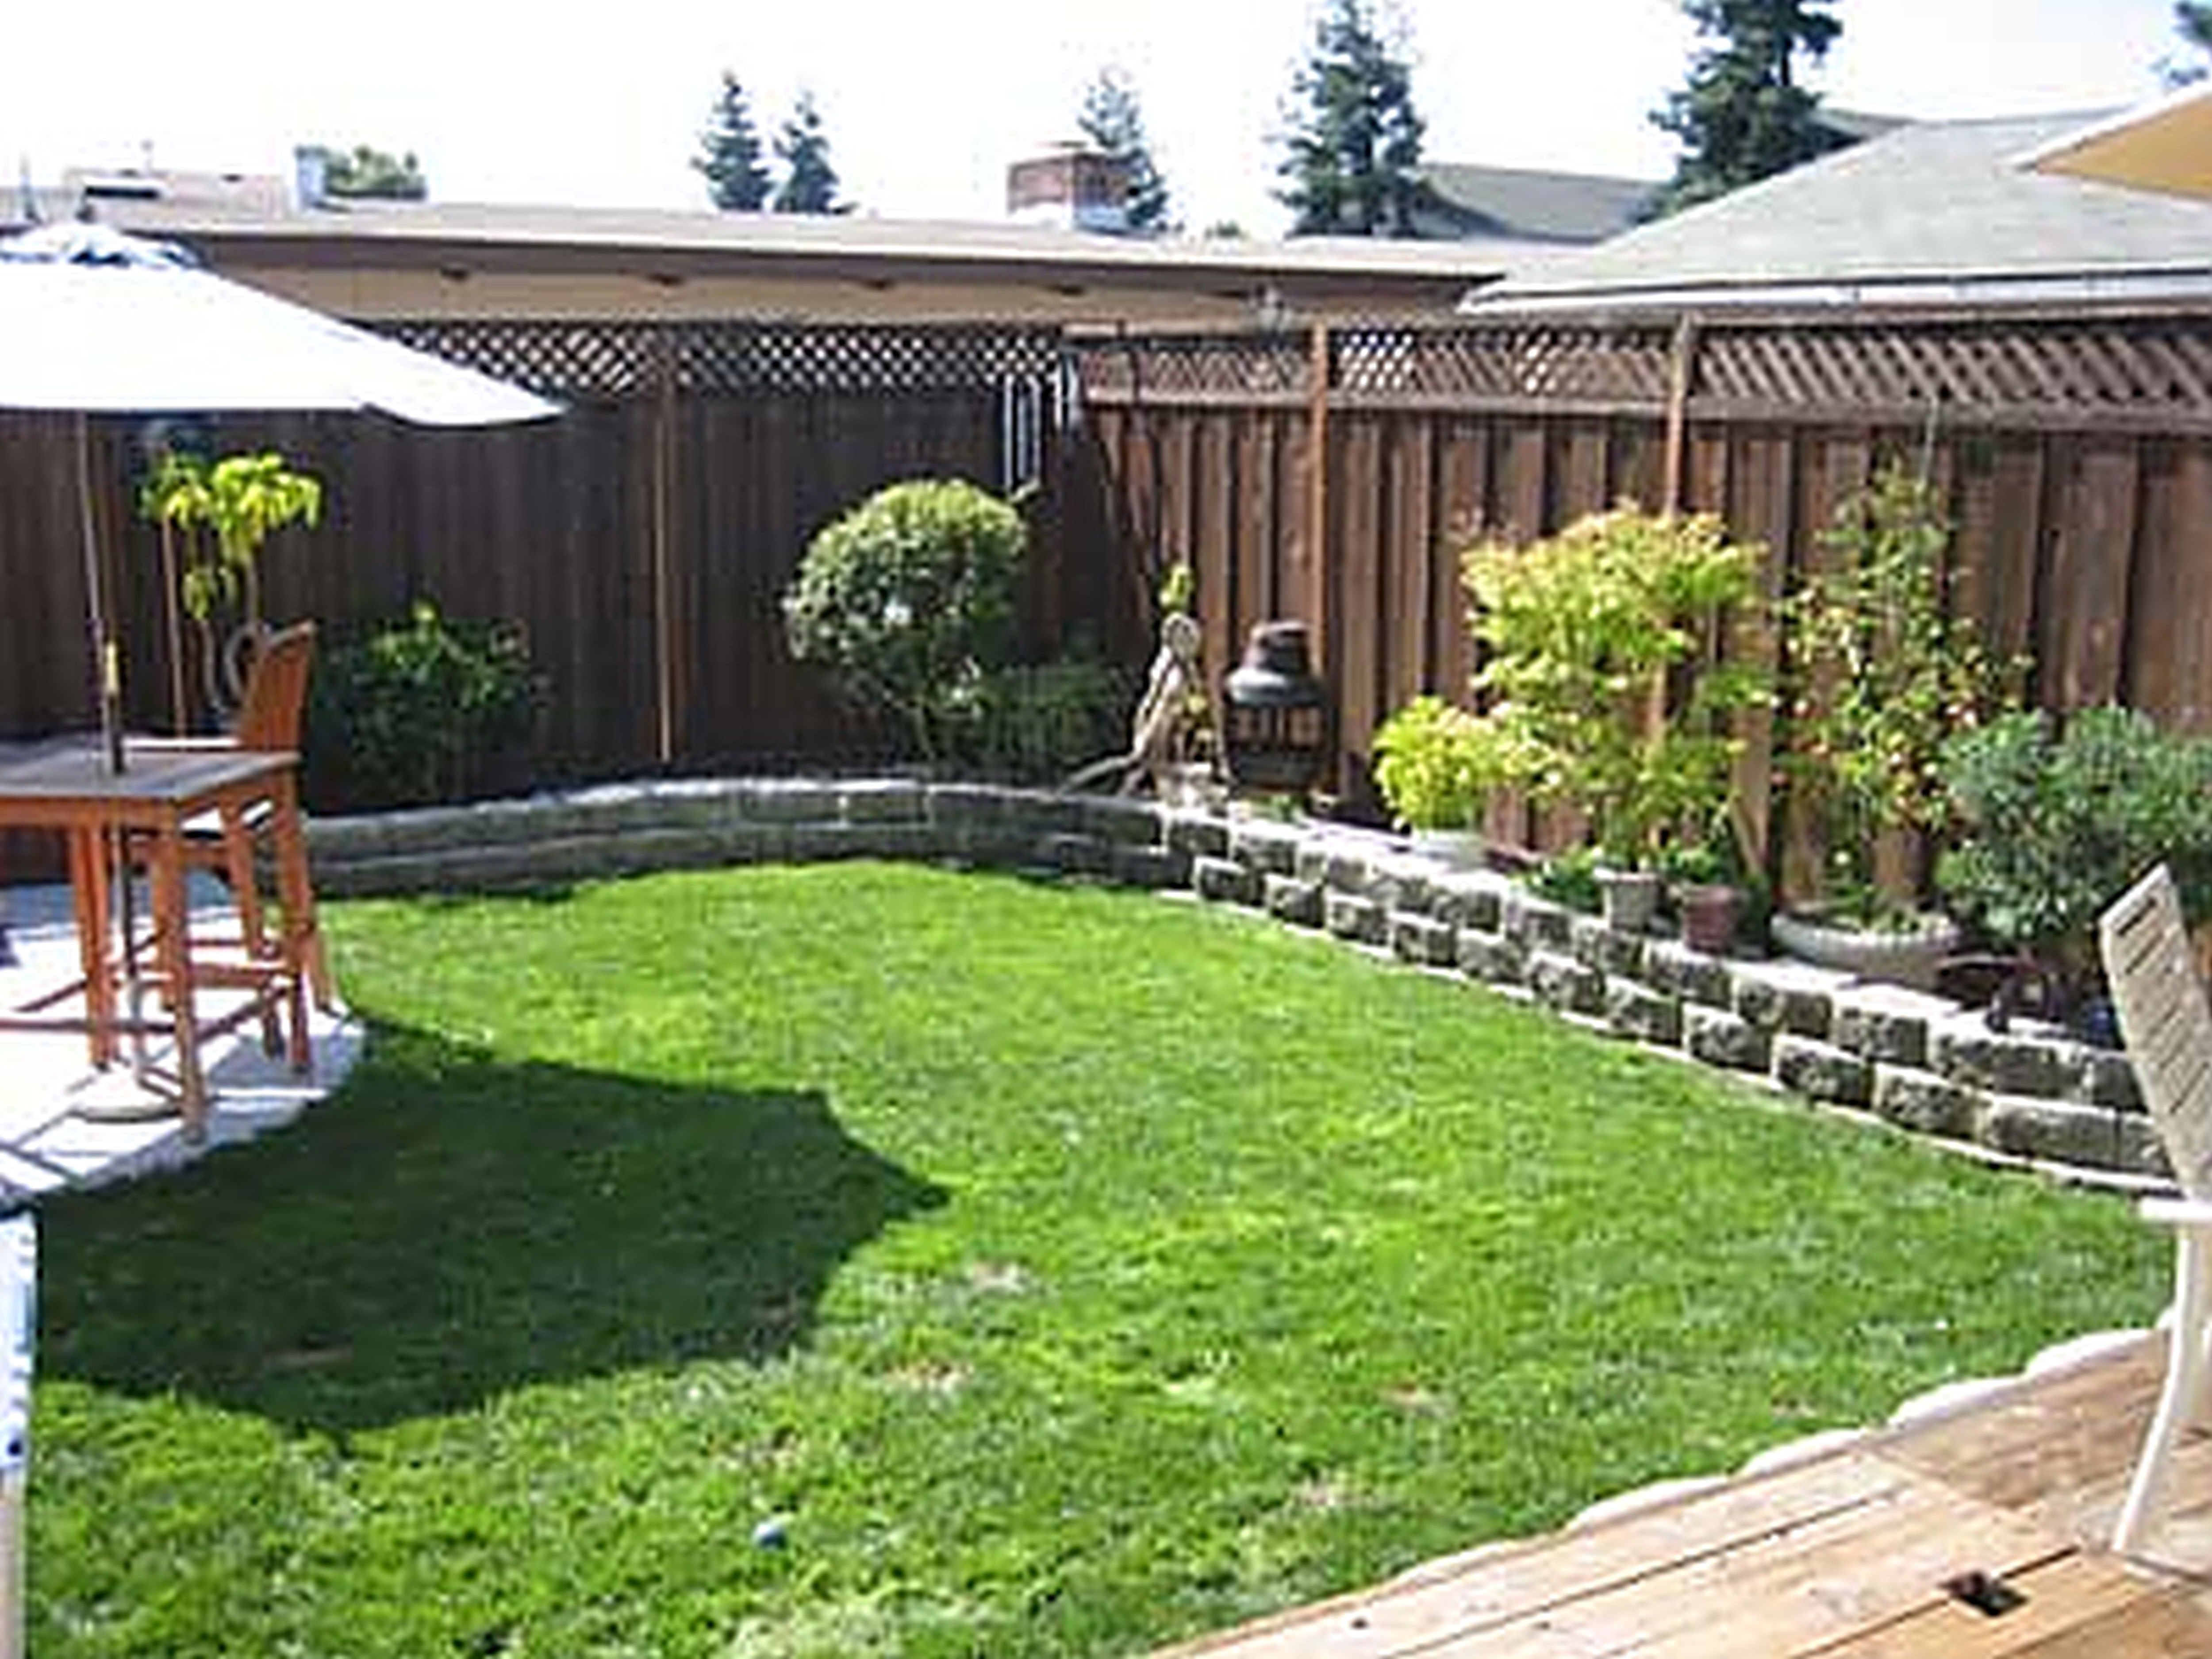 10 Lovable Backyard Design Ideas On A Budget yard landscaping ideas on a budget small backyard landscape cheap 1 2020